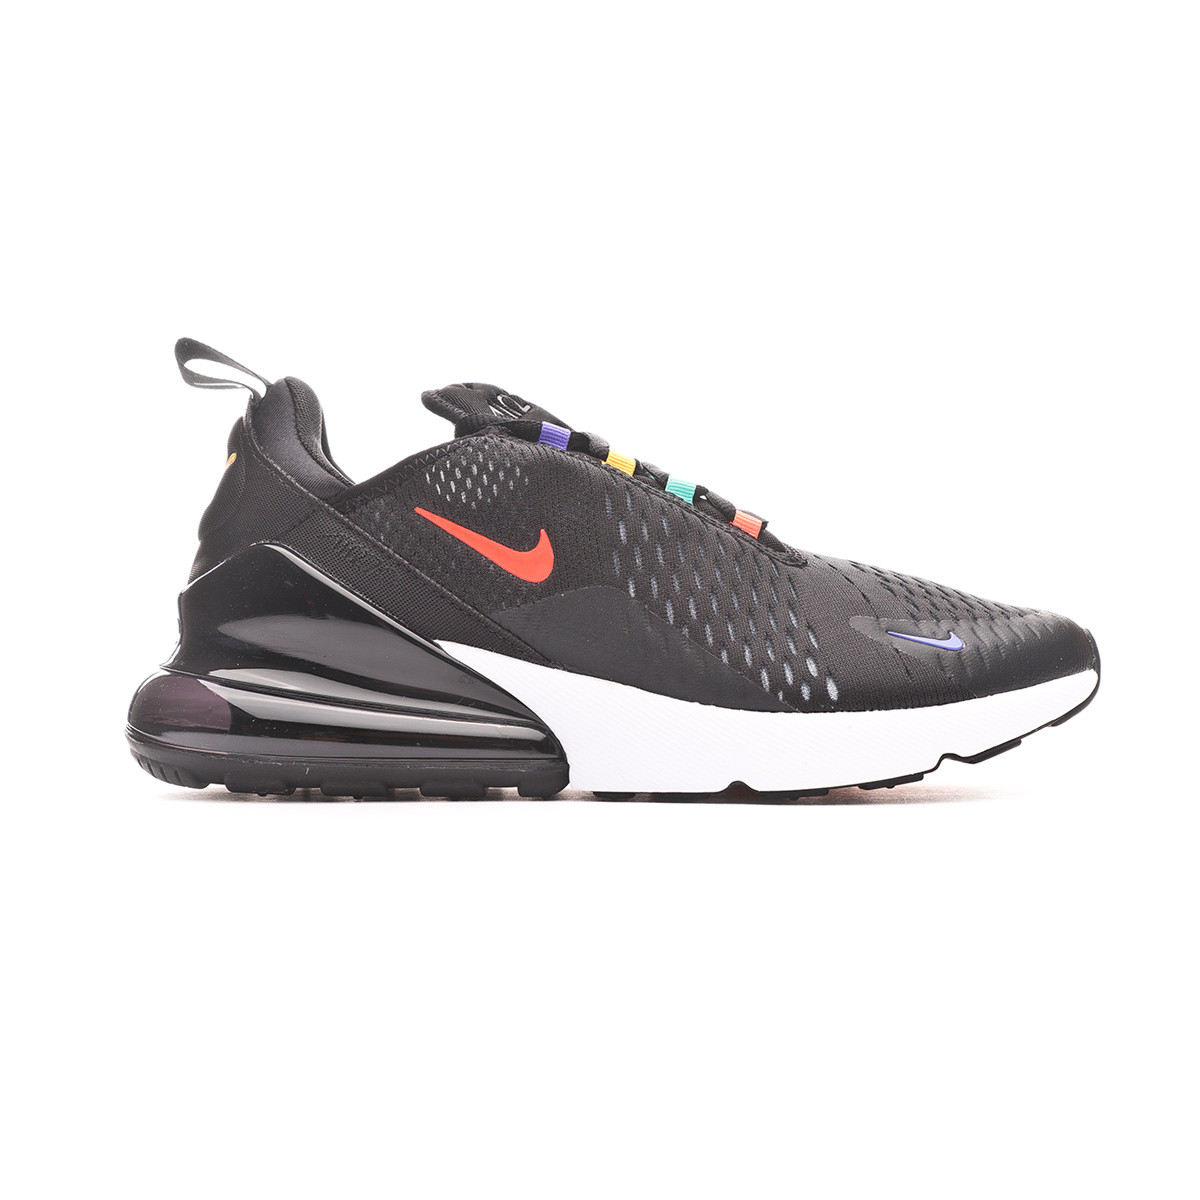 Nike Air Max 270 Shoe Trainers